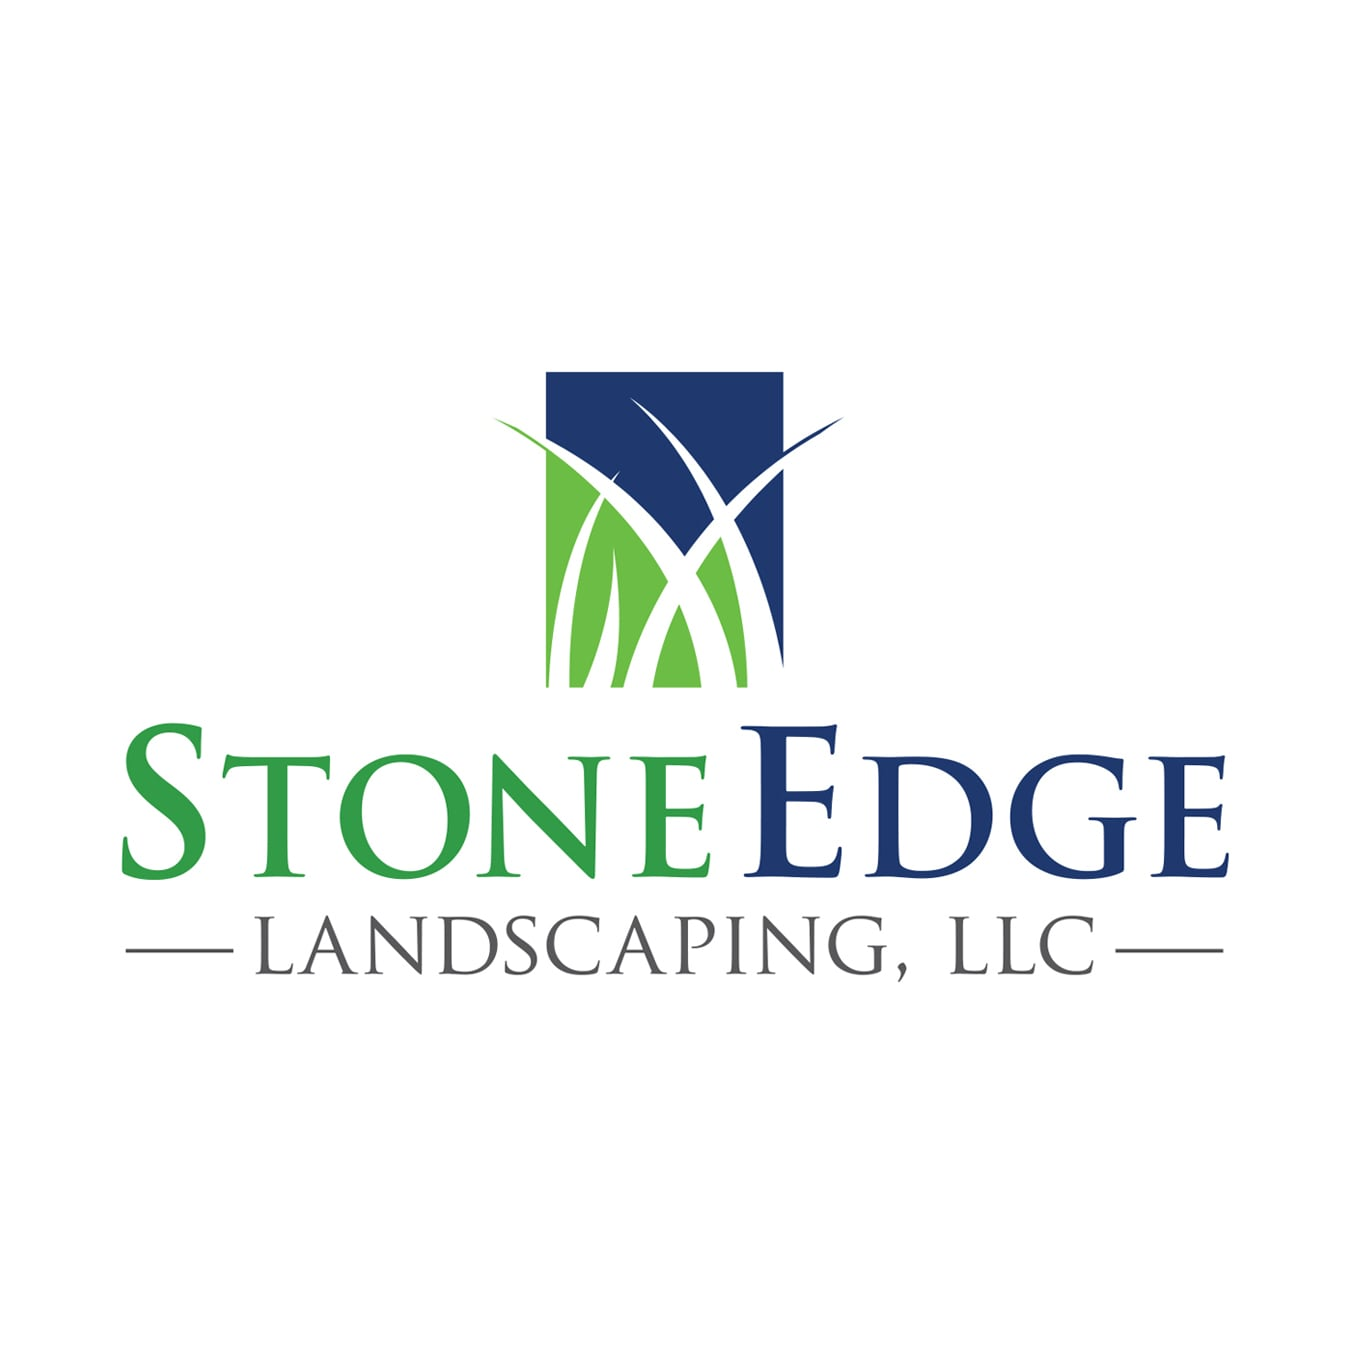 Stone Edge Landscaping, LLC